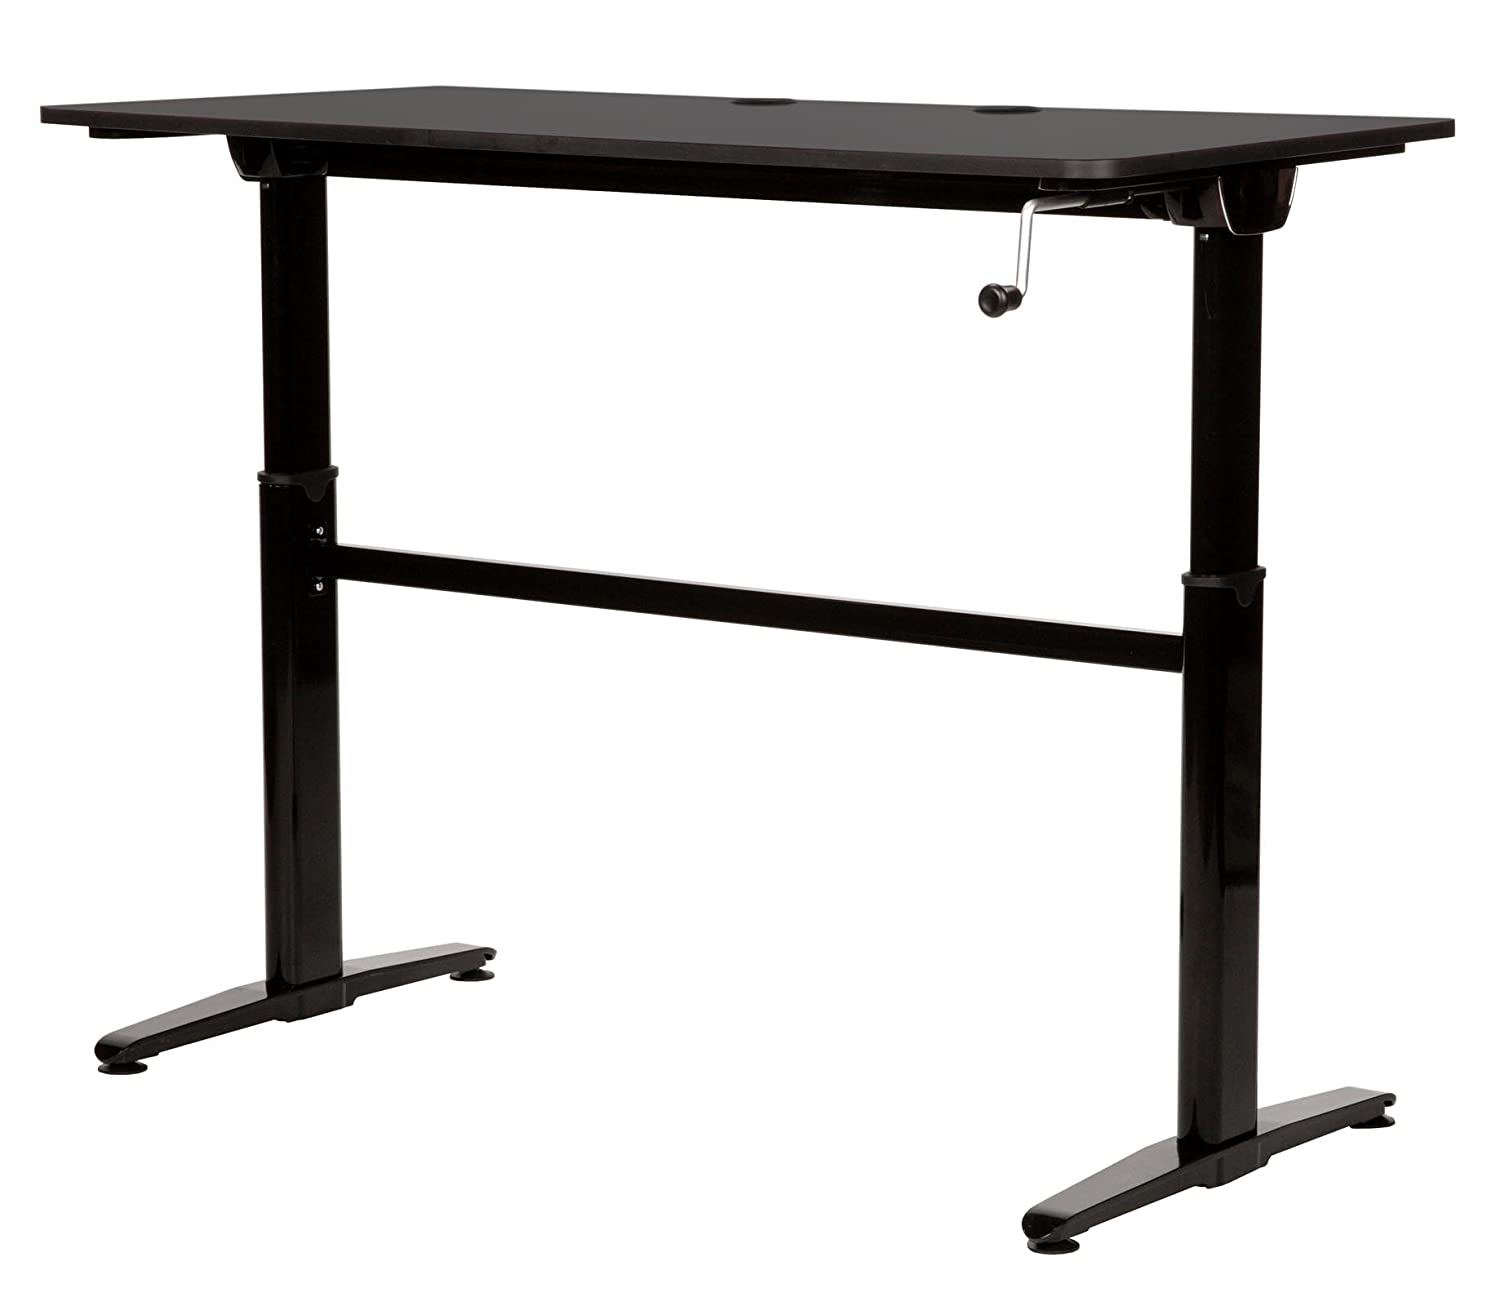 olympus stand review height reviews omega adjustable up ol imovr workstation desk standing